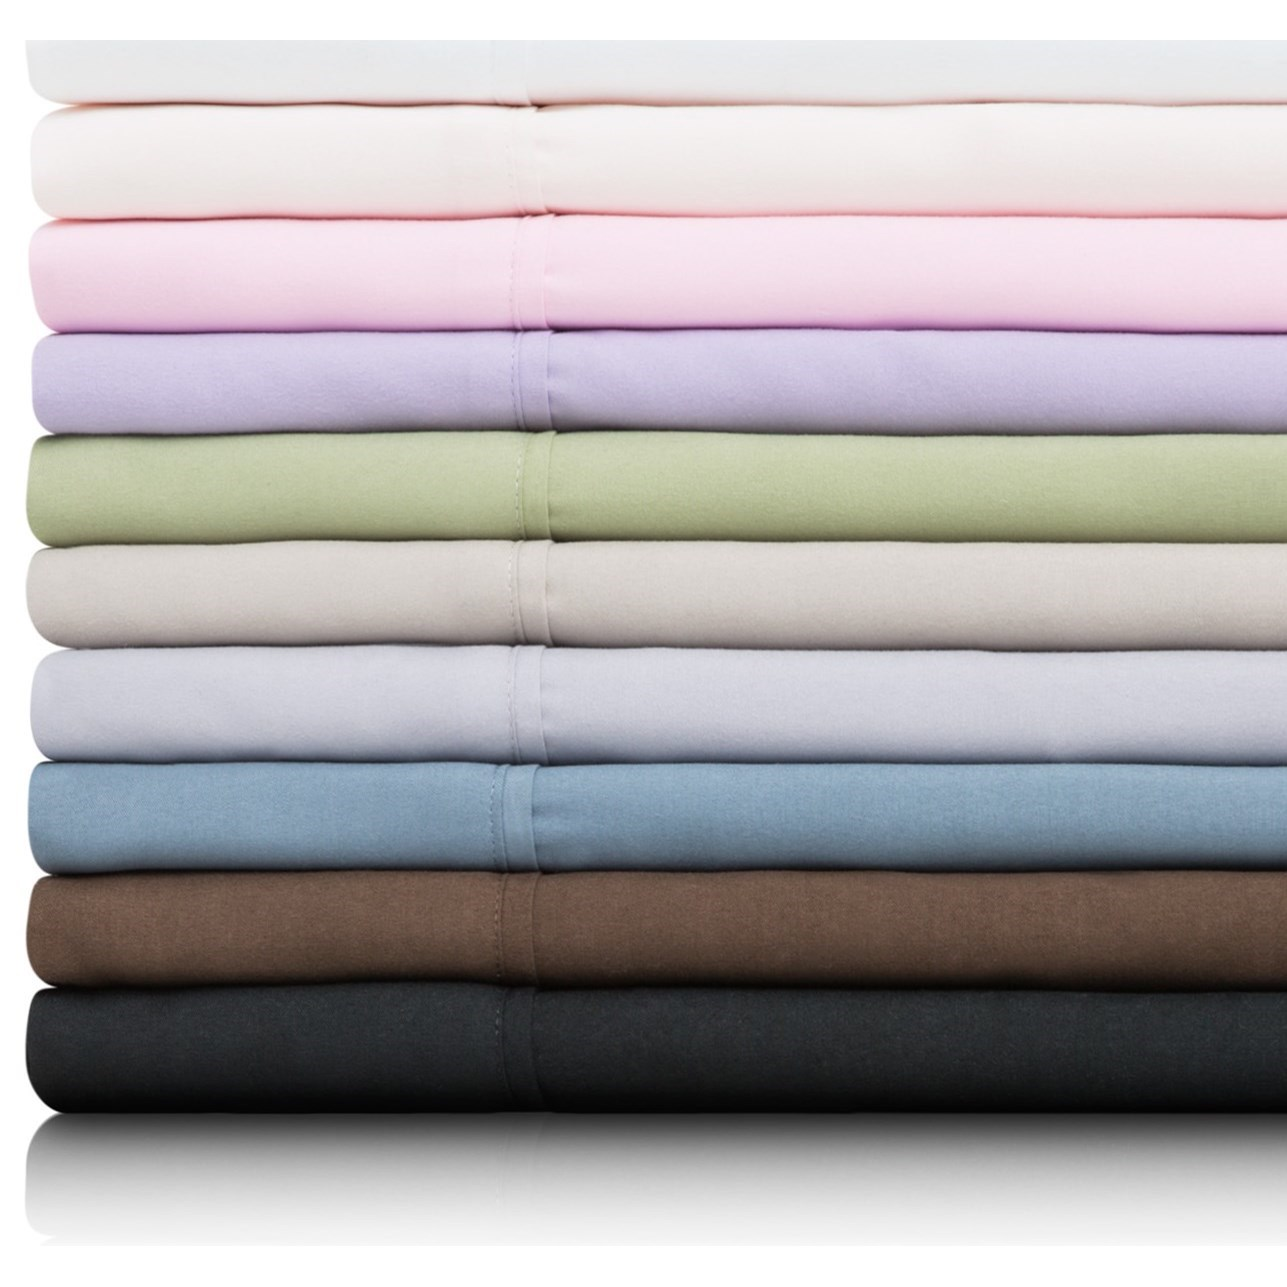 Malouf Brushed Microfiber Split Queen Woven™ Brushed Microfiber Sheet  - Item Number: MA90SQIVMS